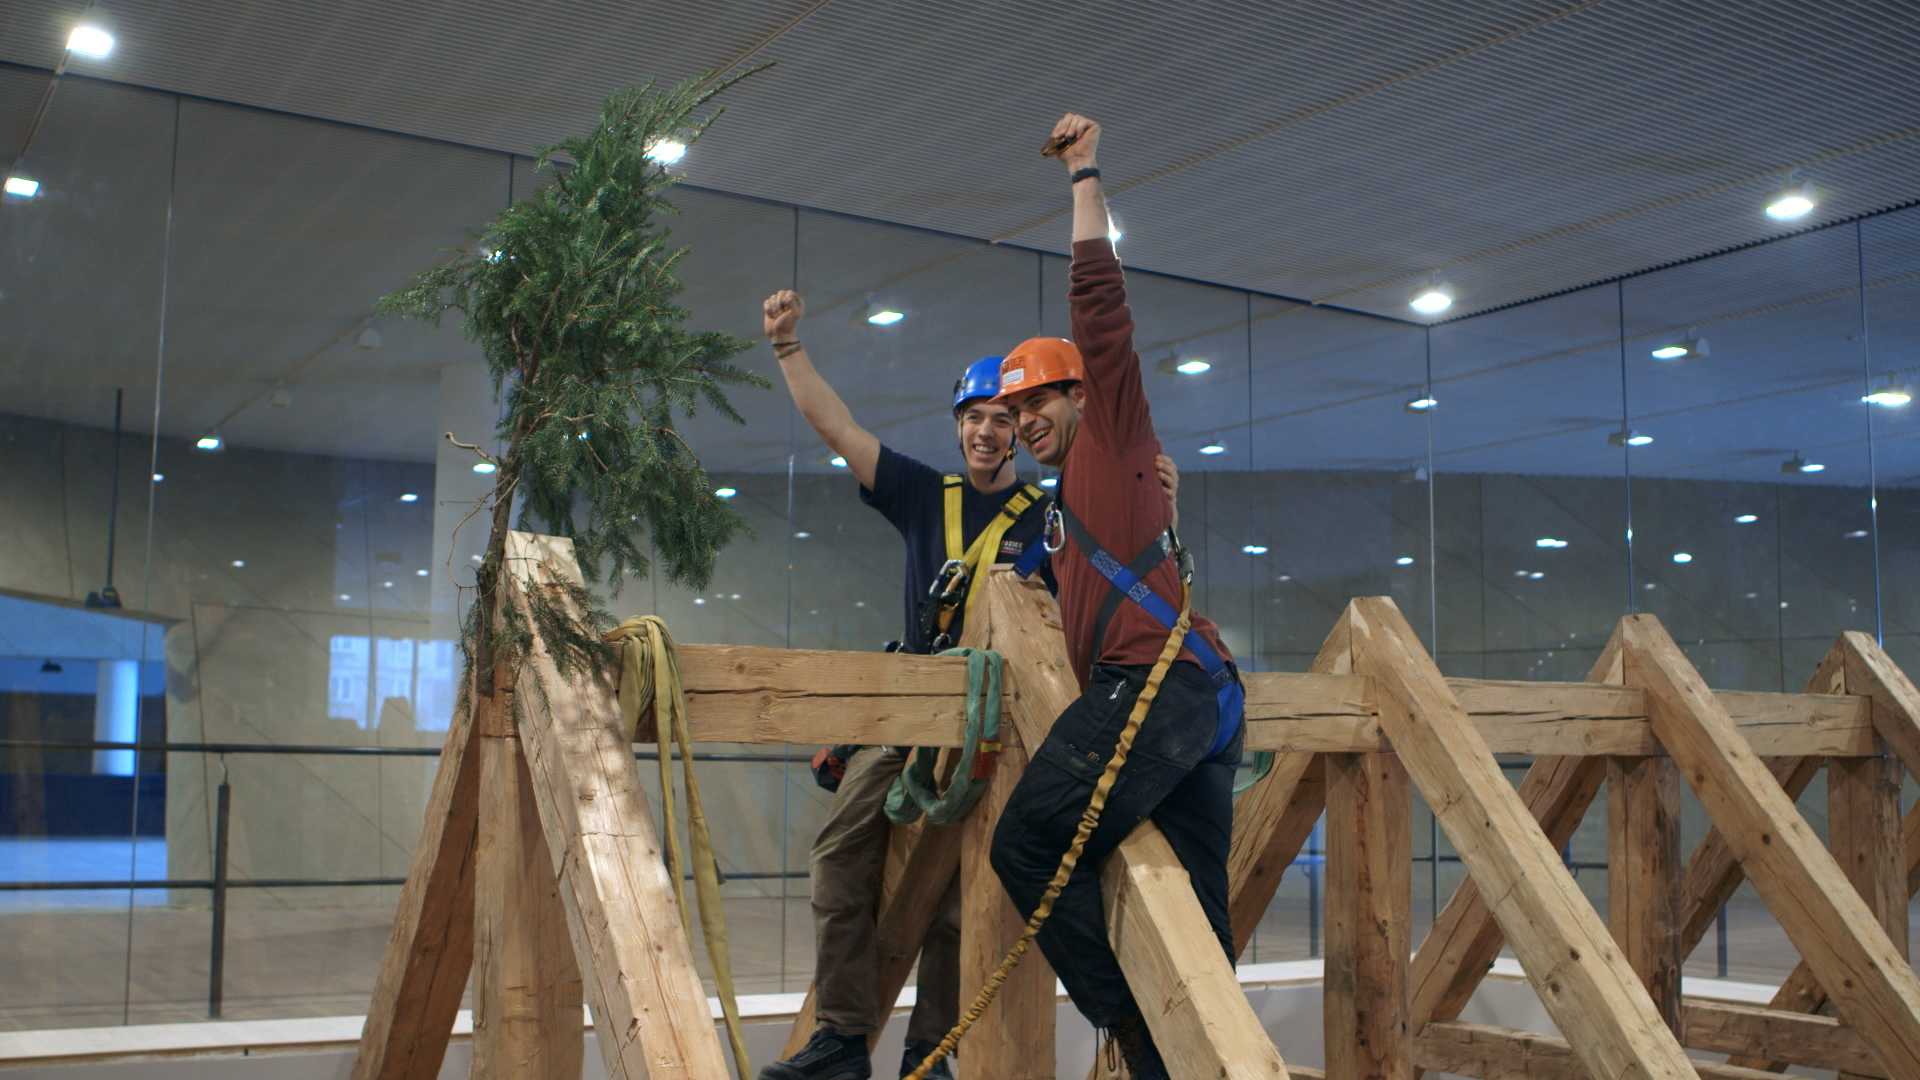 Still 44:  Jason Loik and Jacob Jensen celebrate the raising of the roof by placing an evergreen tree at the top.